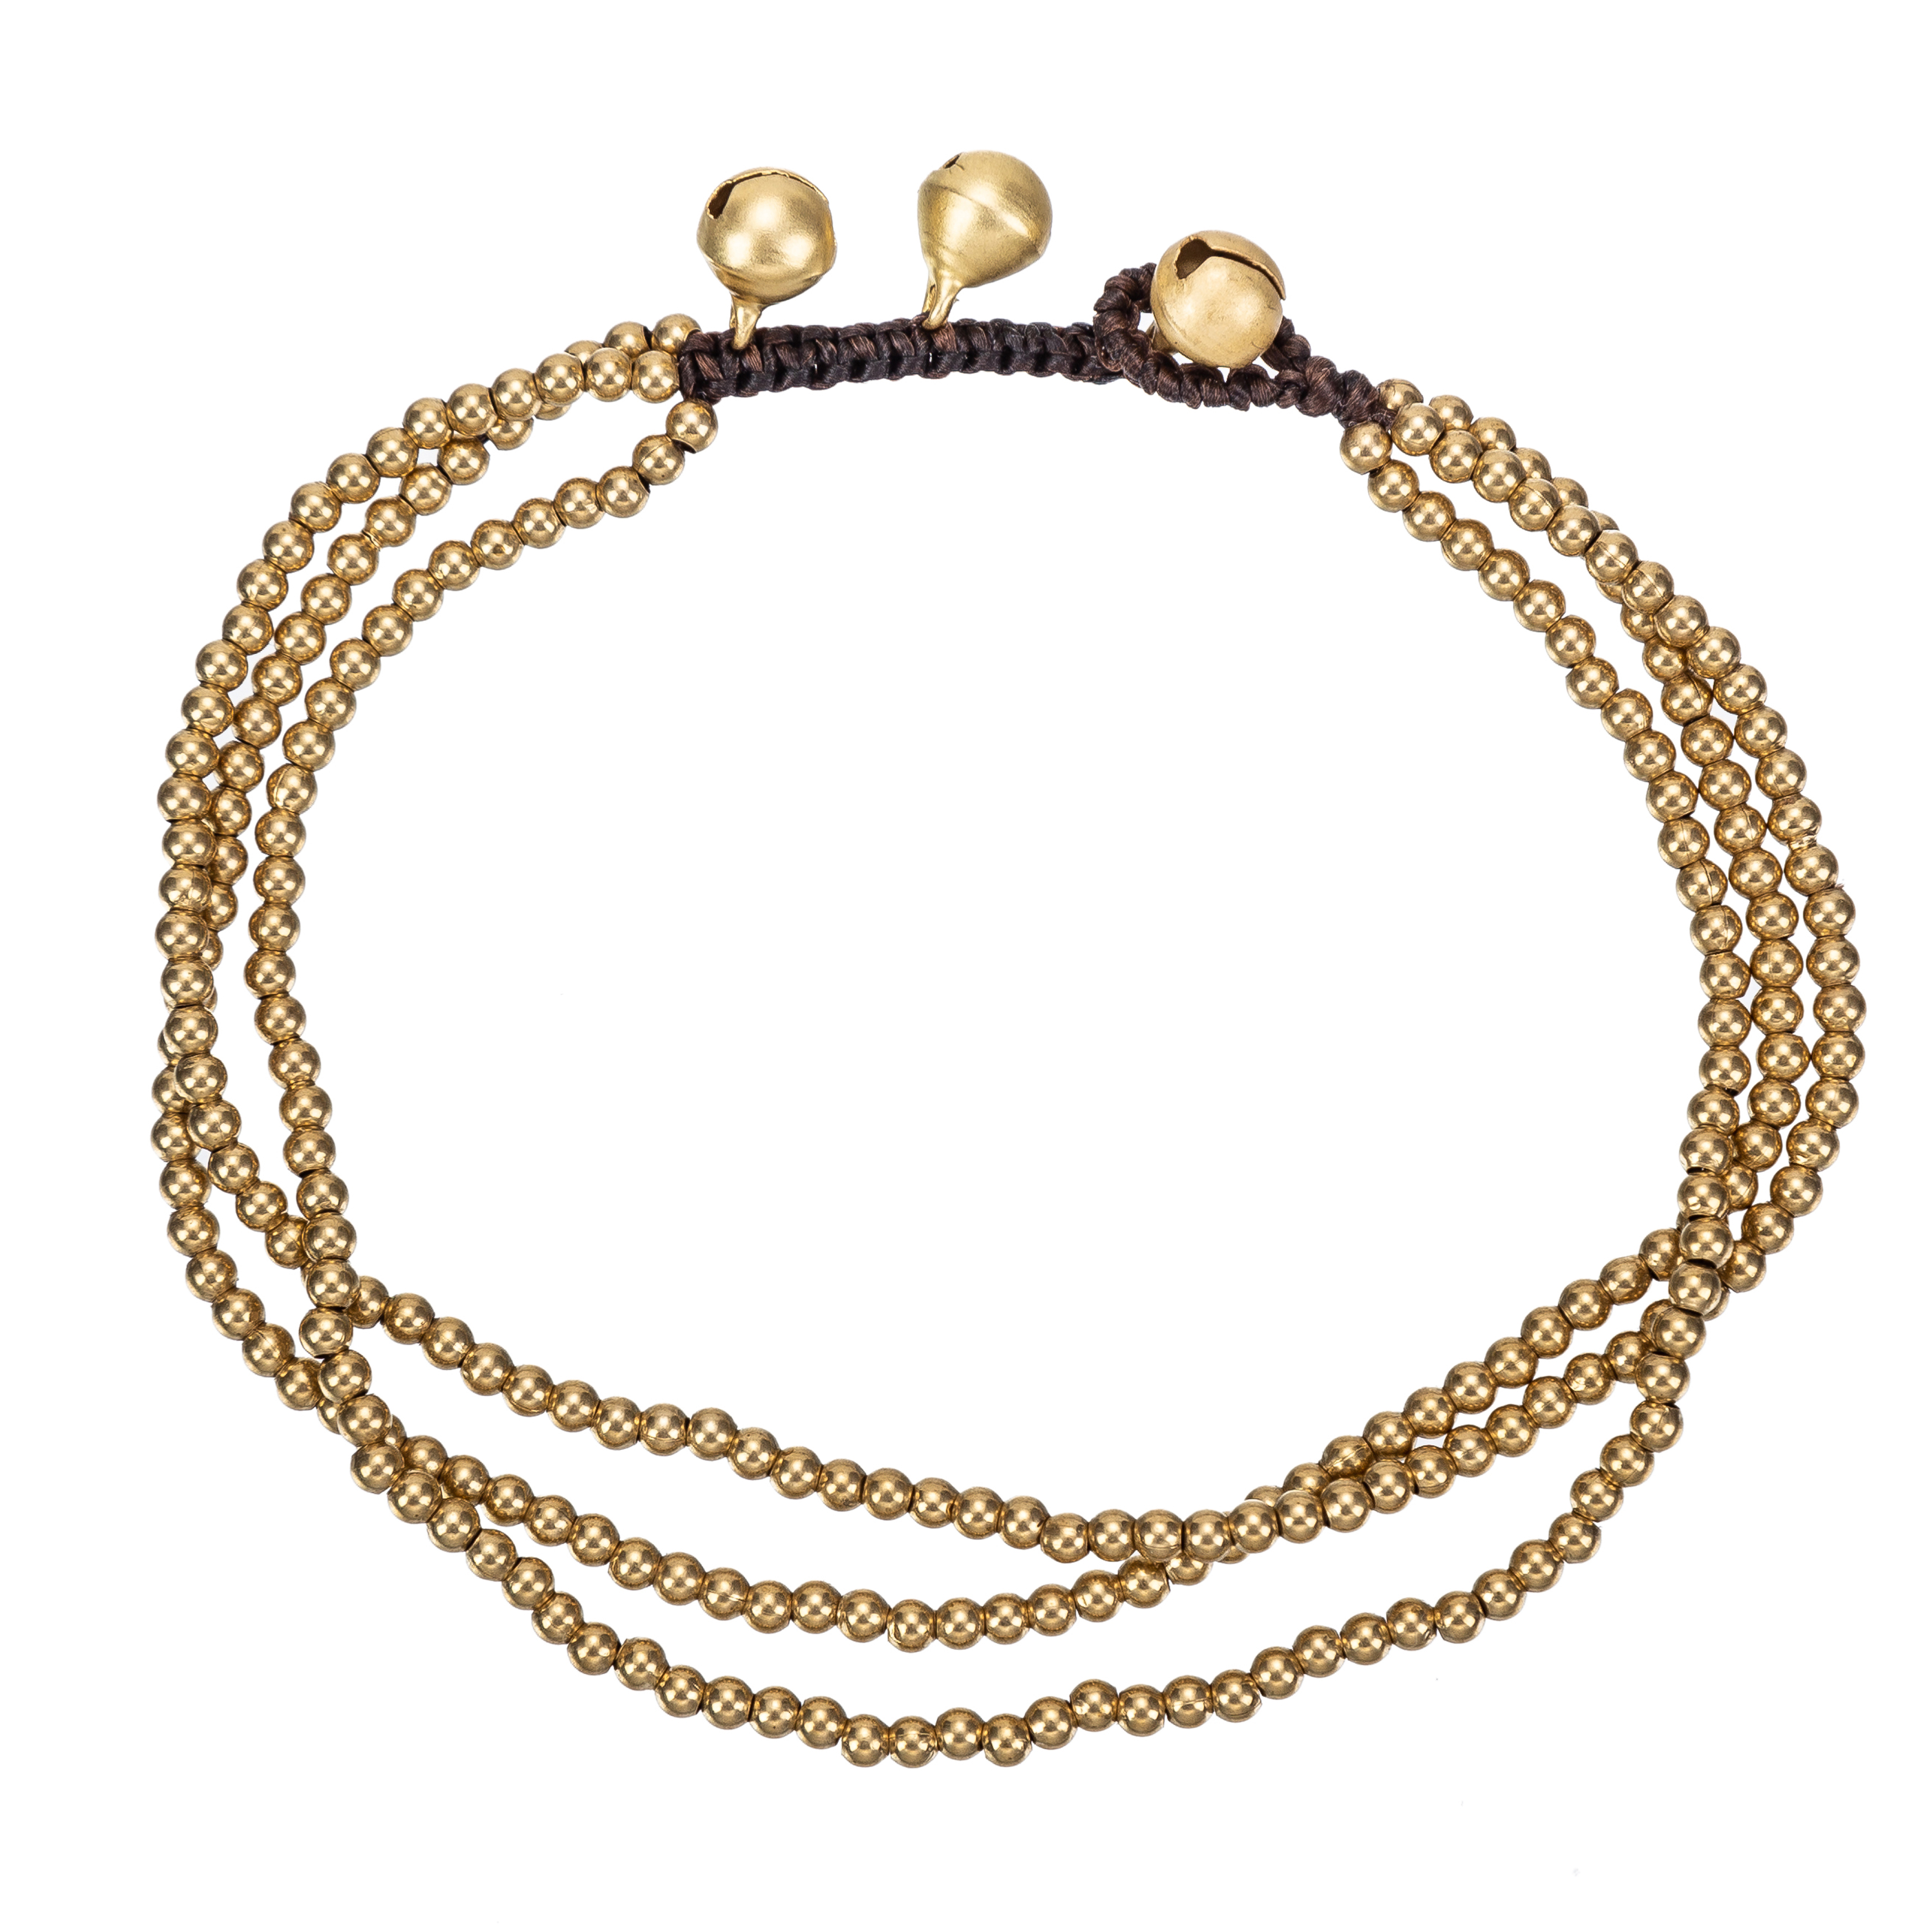 Vintage 3 Layers Beaded Chain Leg Anklets For Women Ankle Bracelet Woman Anklet Female Foot Jewelry